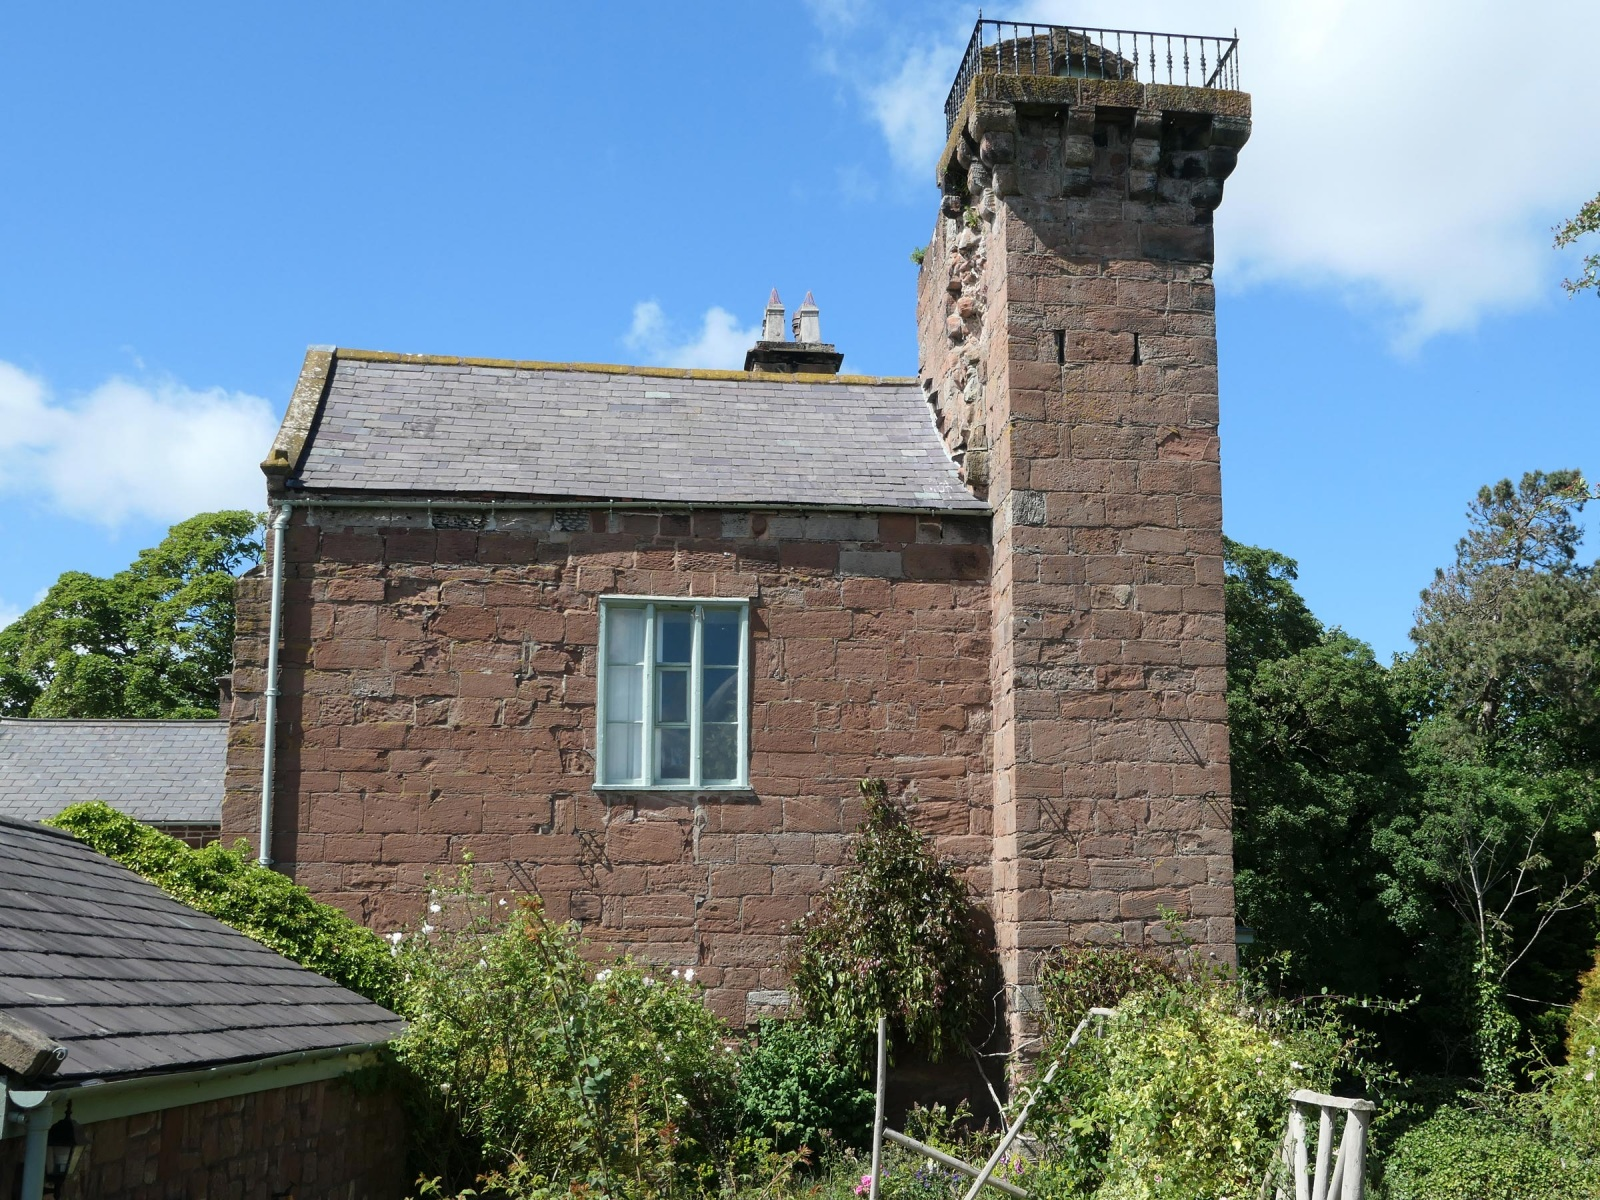 The tower at Brimstage Hall.